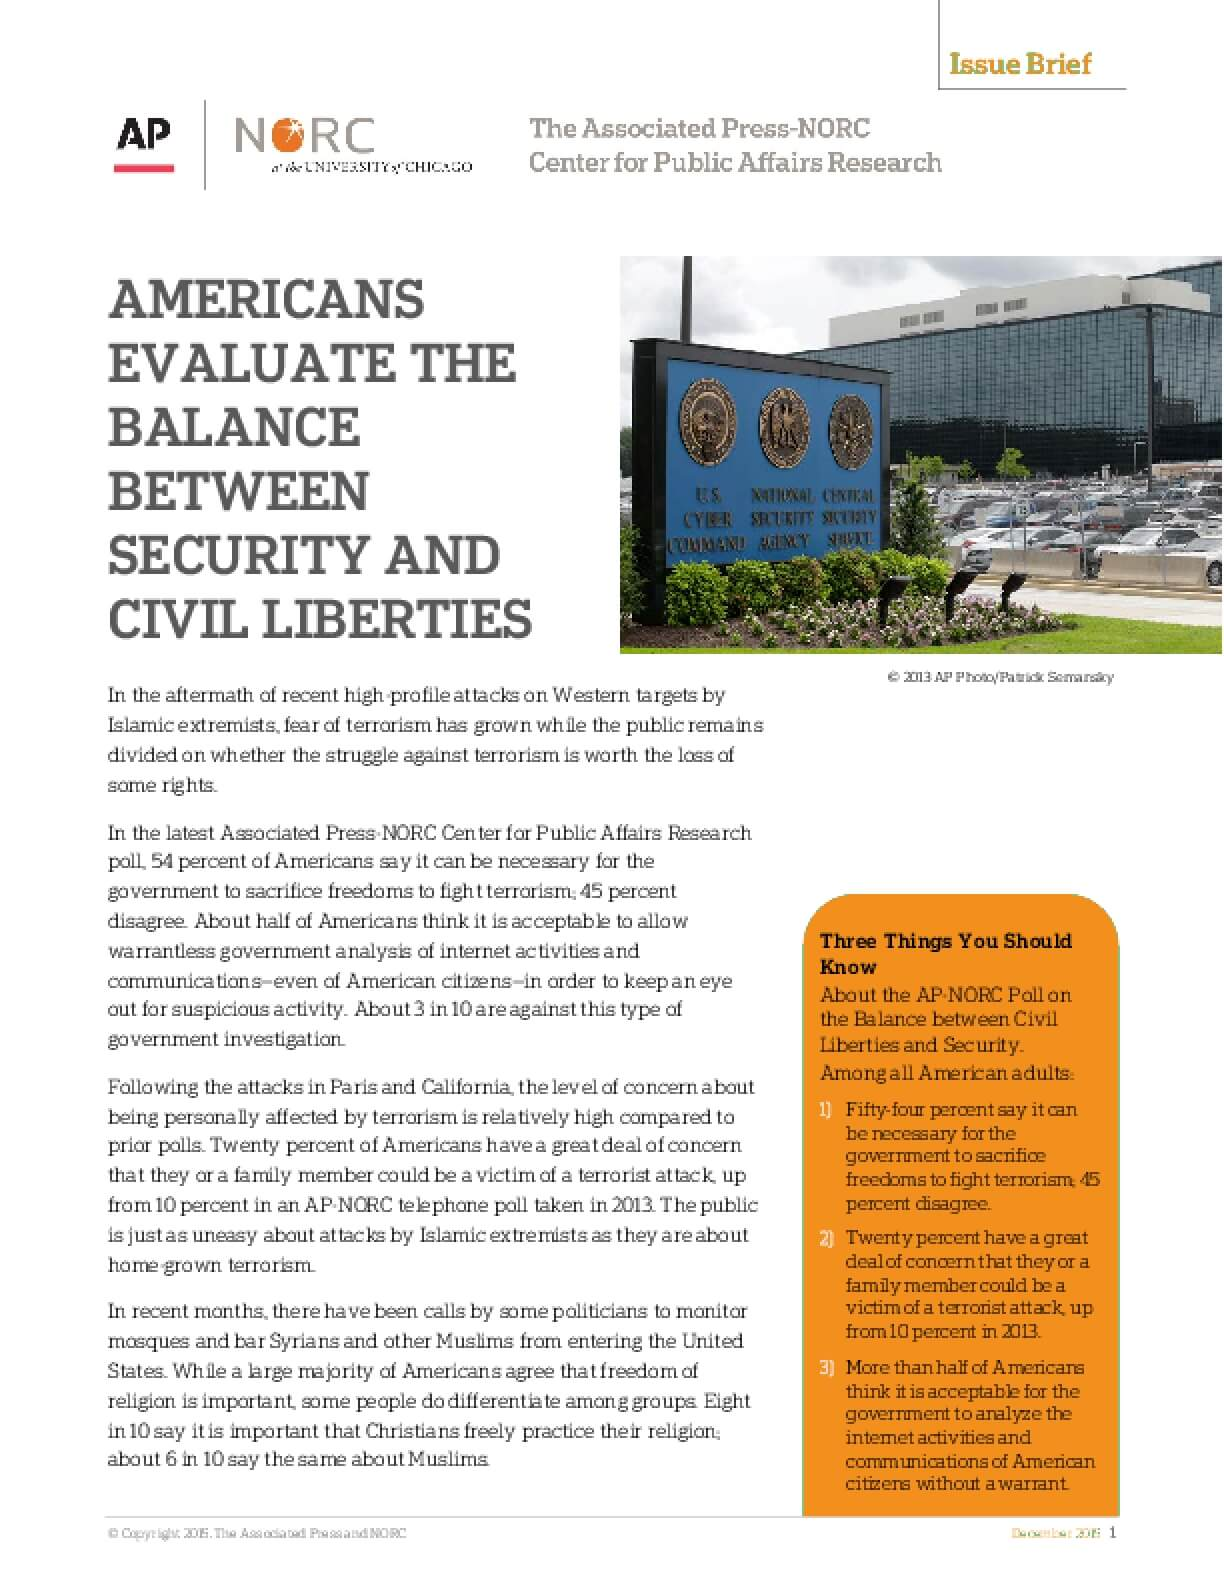 Americans Evaluate the Balance between Security and Civil Liberties